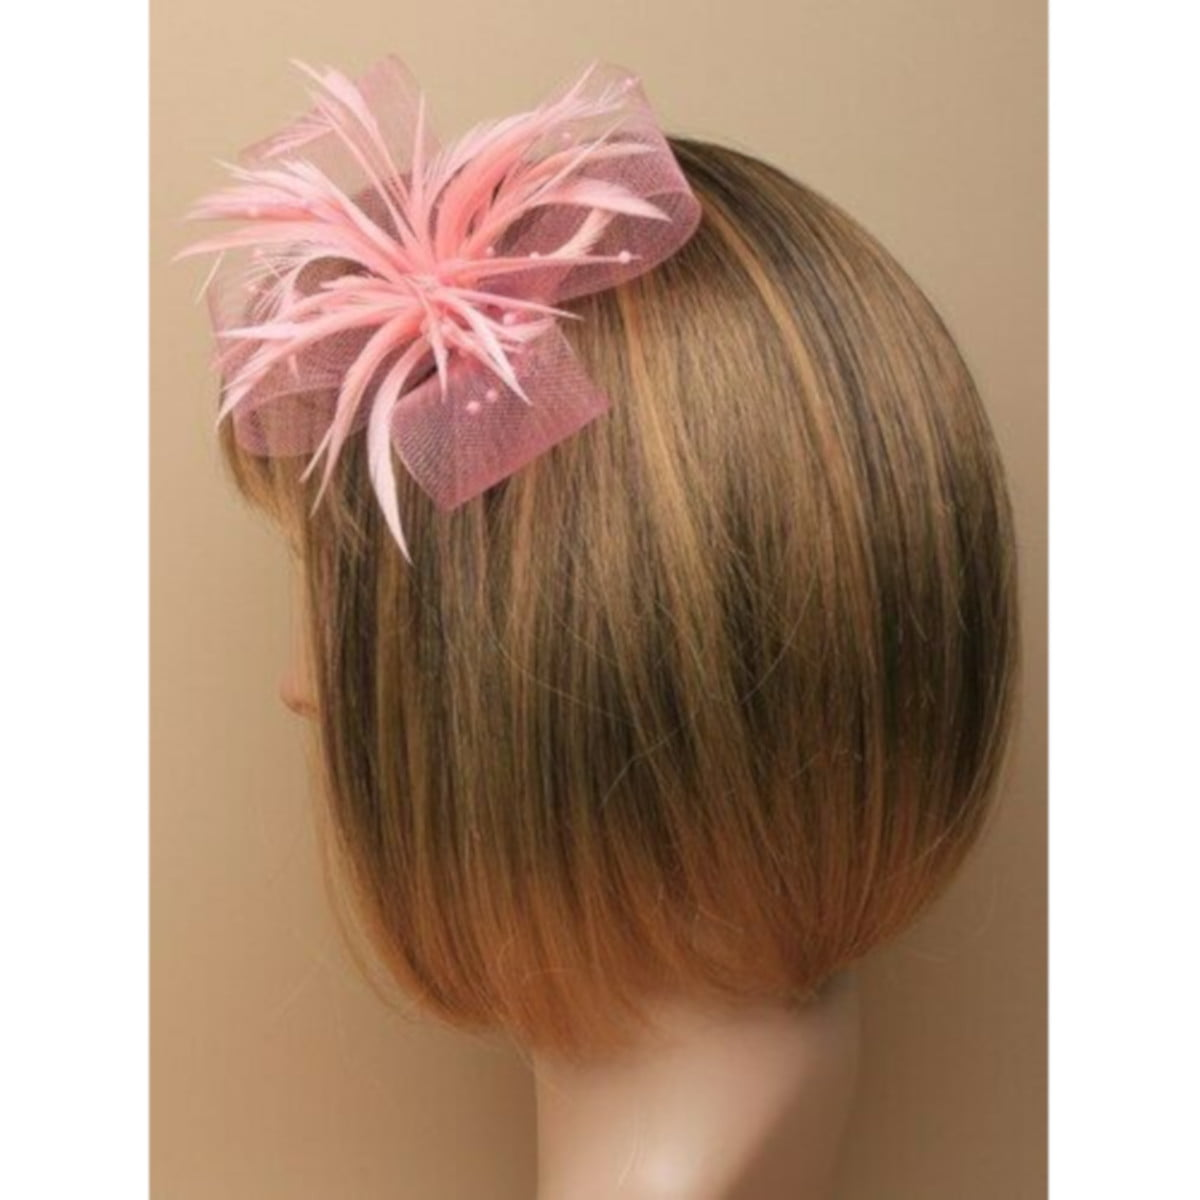 Pink fascinator with net loops and feathers. Beak clip and pin fastenings. 3